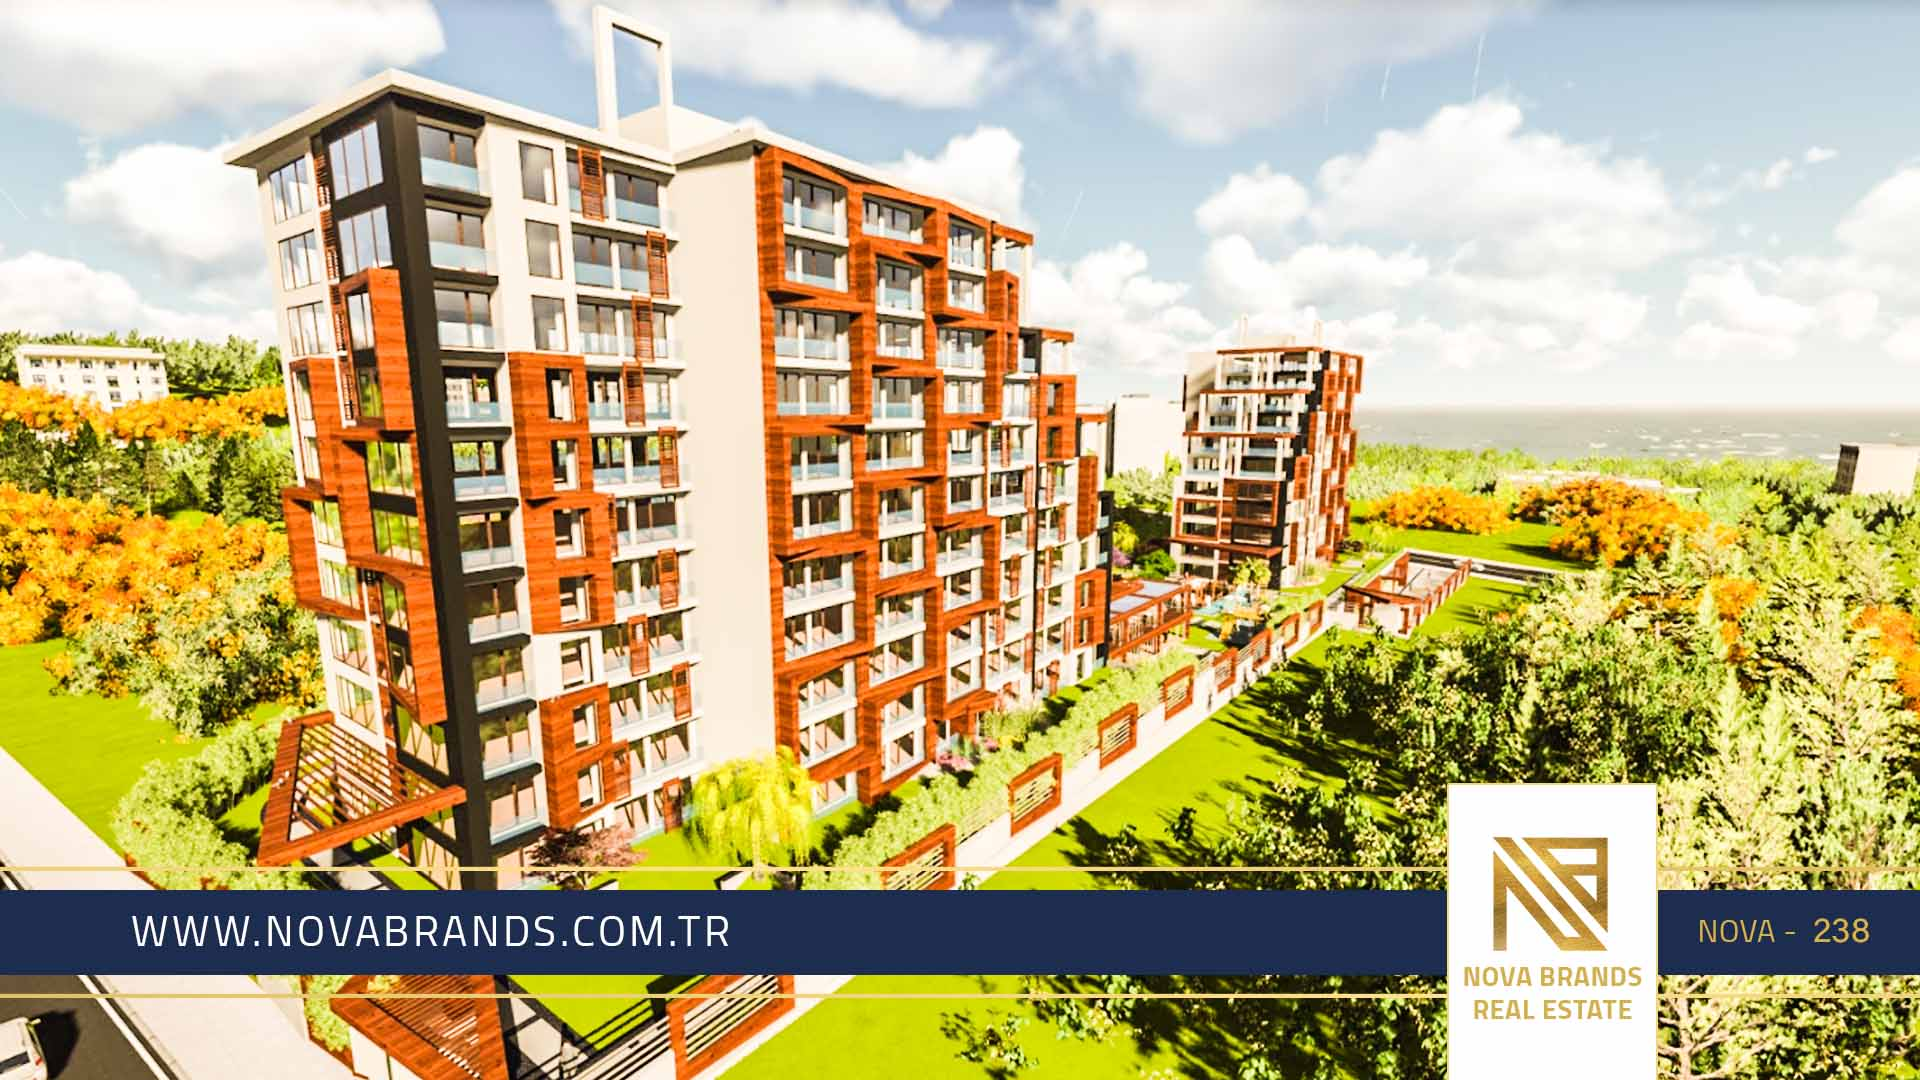 A successful family residence and investment project in Istanbul